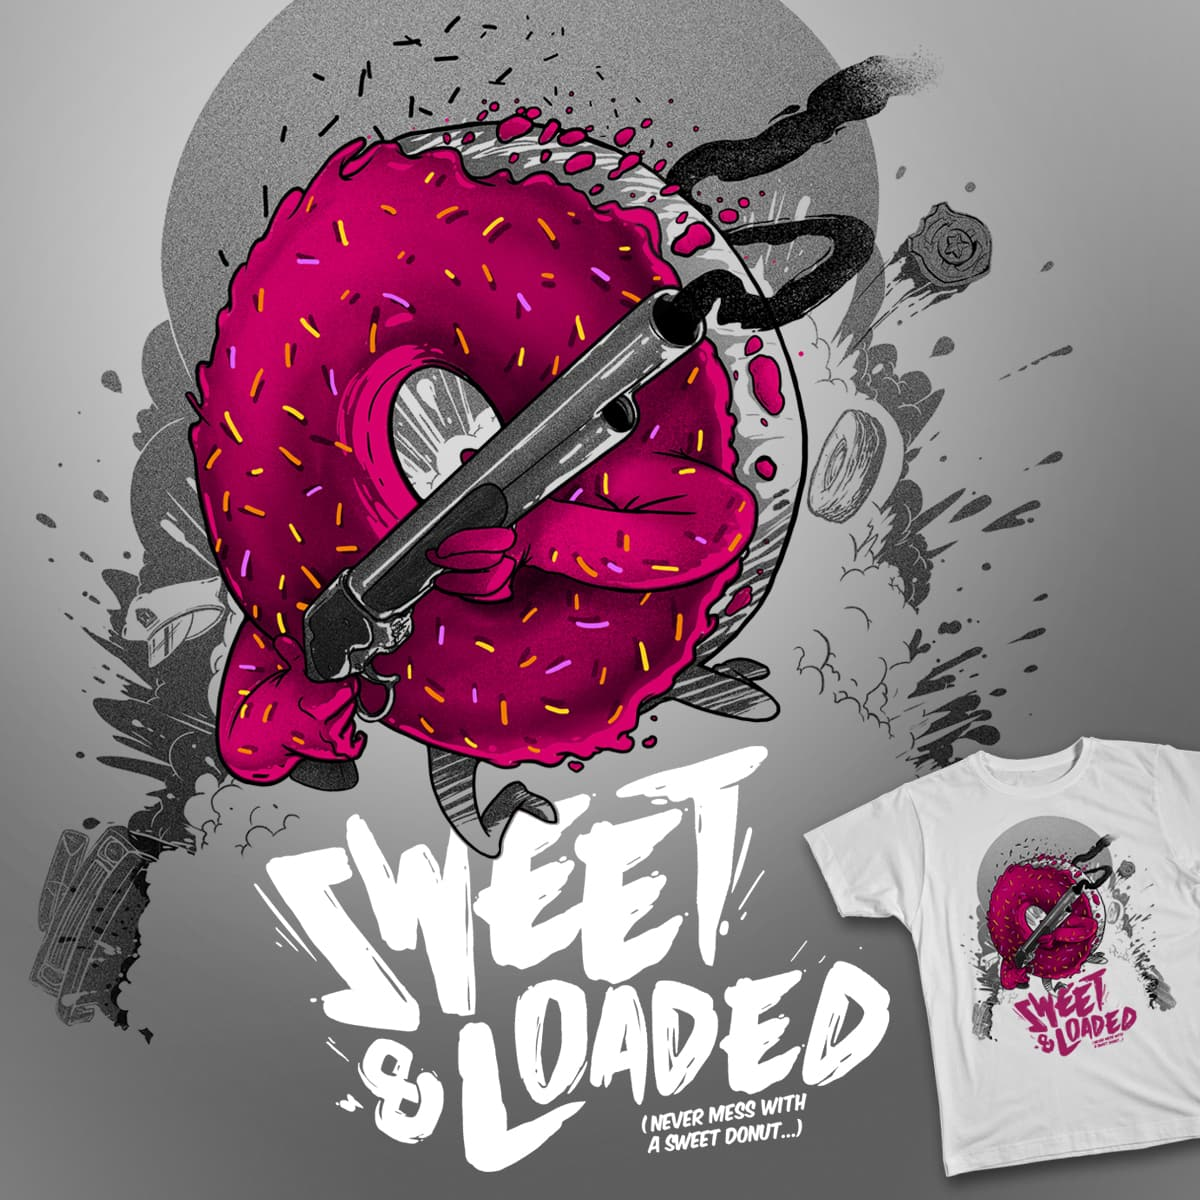 Sweet & Loaded!. by XAVE on Threadless